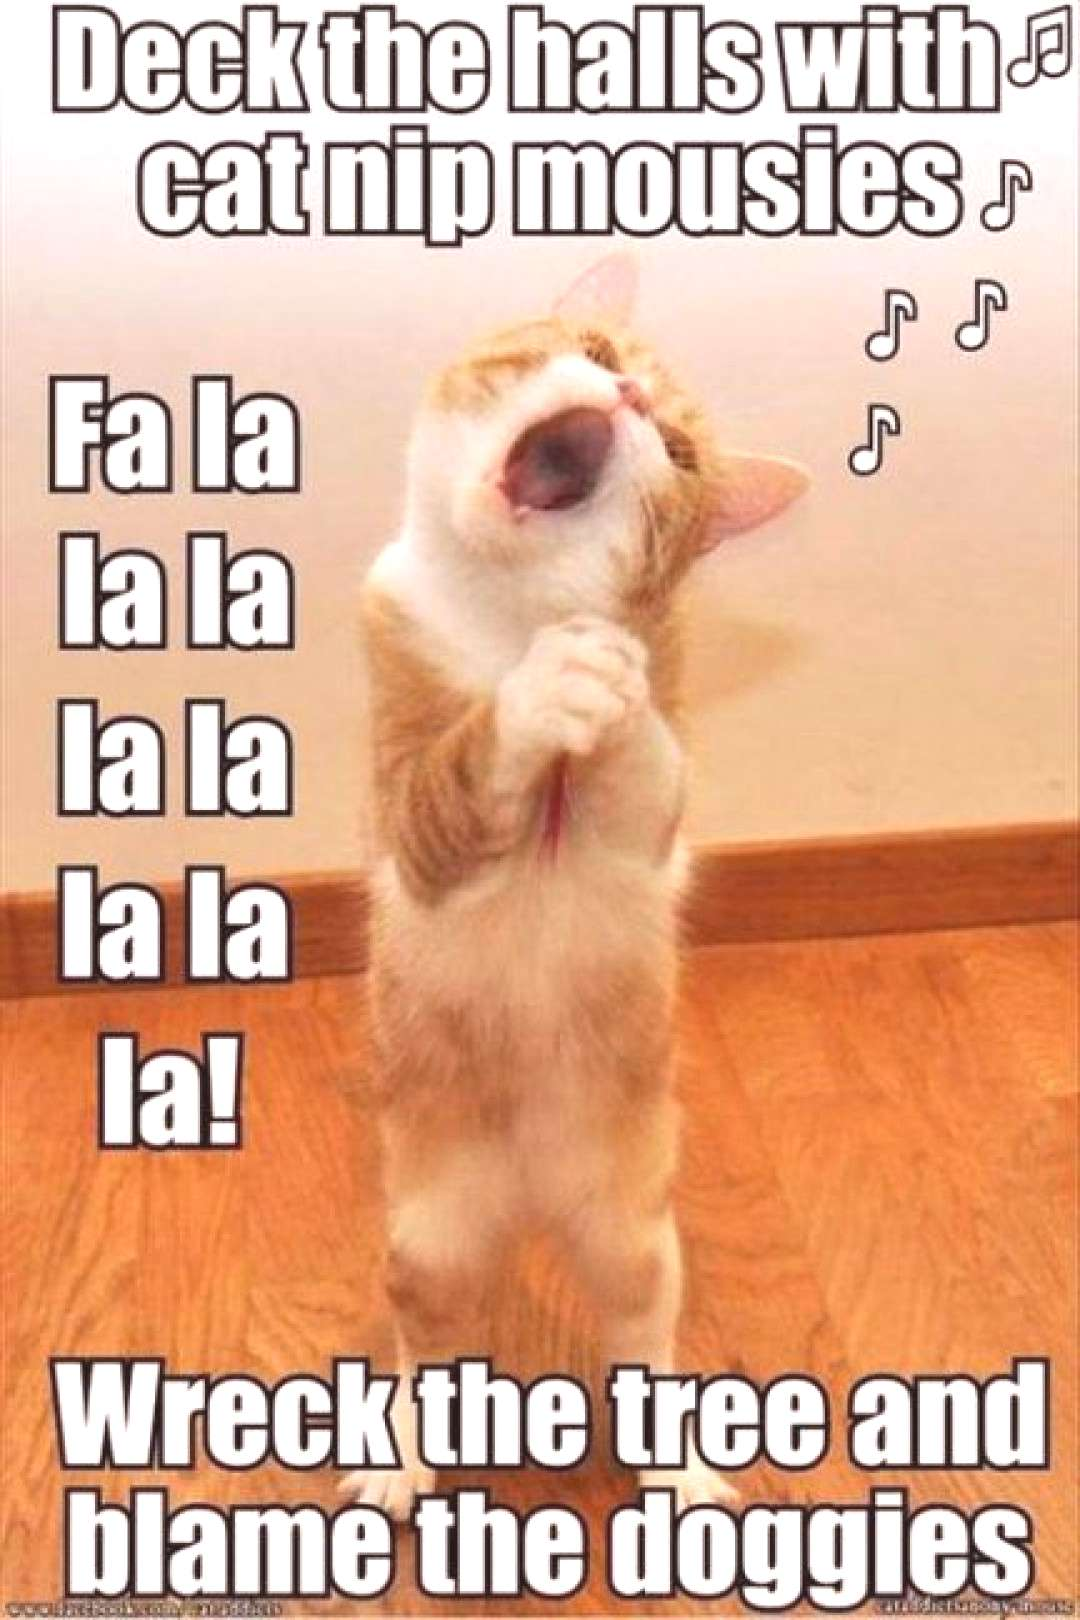 Funny Cats Memes Laughing So Hard Hilarious Songs 51 Ideas Funny Cats Memes Laughing So Hard Hilari